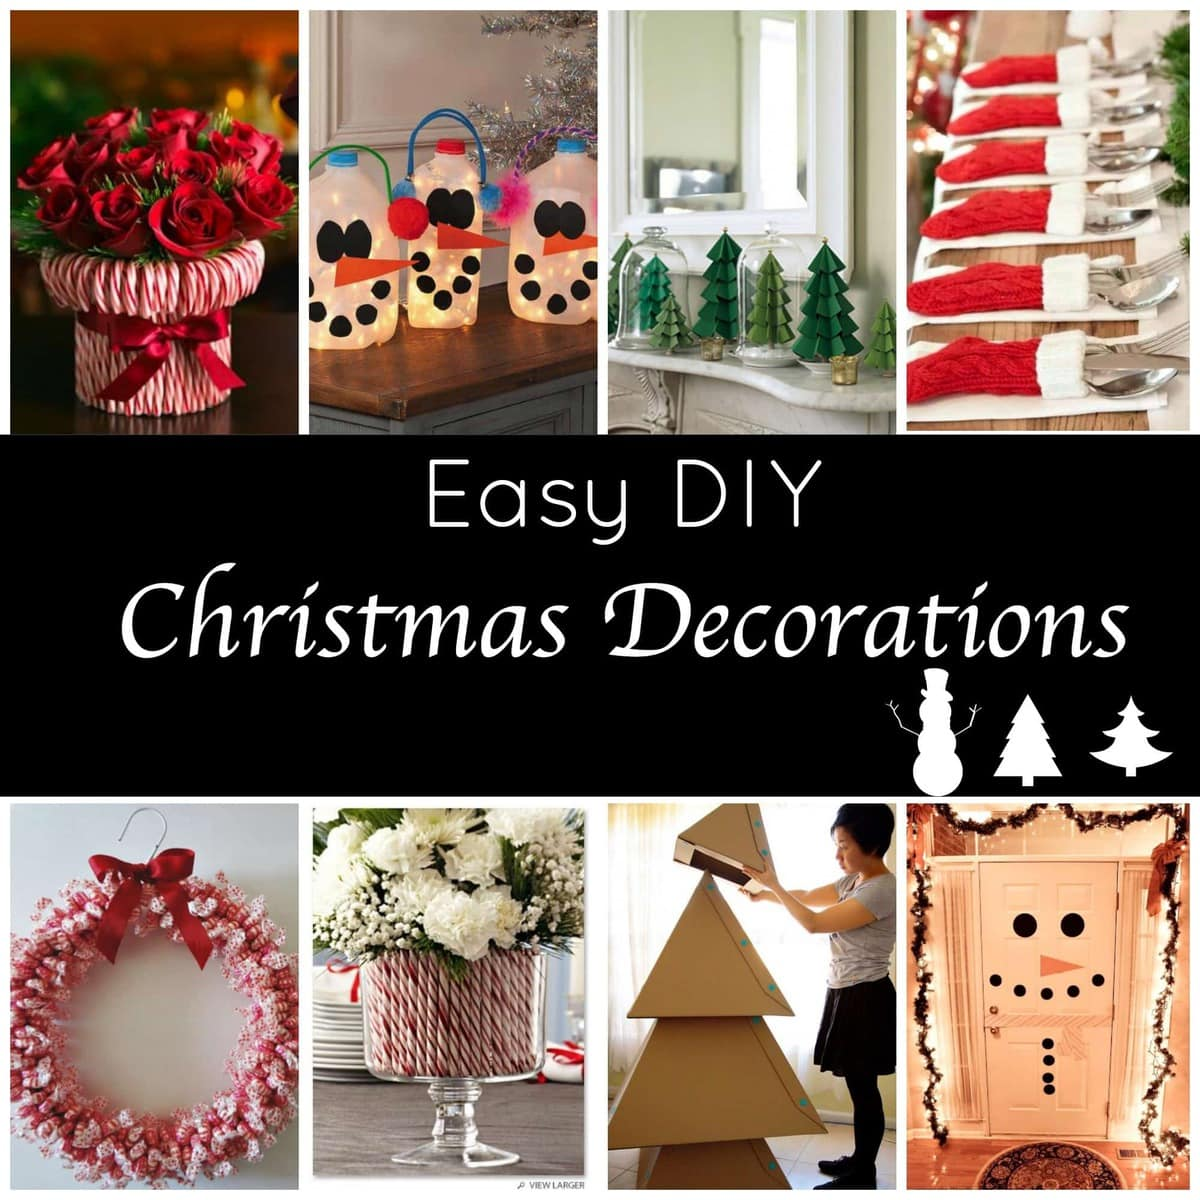 Cute And Easy Diy Holiday Decorations For A Festive Home